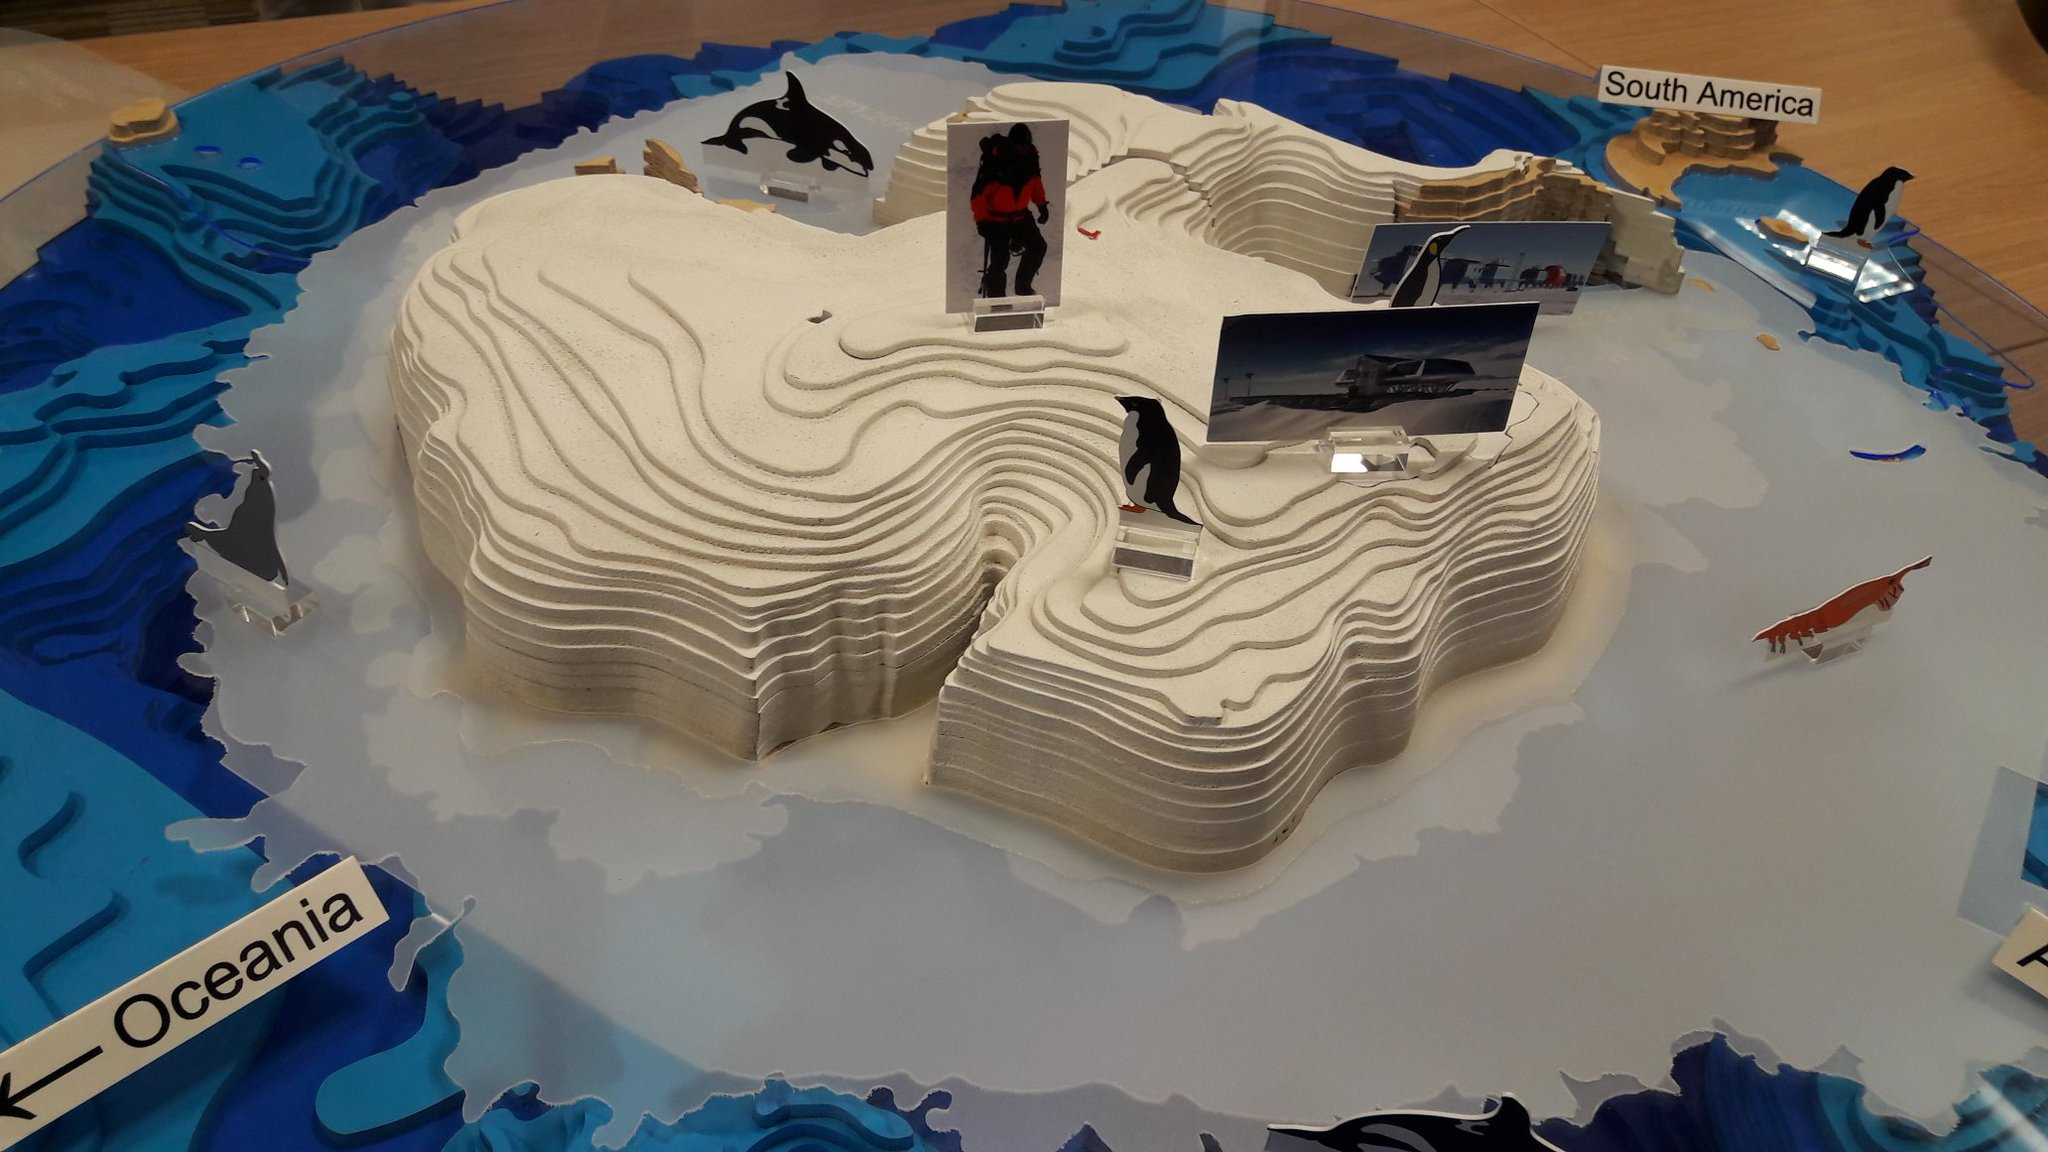 I want this as a coffee table! Antarctica puzzle for Pole to Pole at #LFoS17 @UniversityLeeds #SciComm https://t.co/fKFsHkQUup